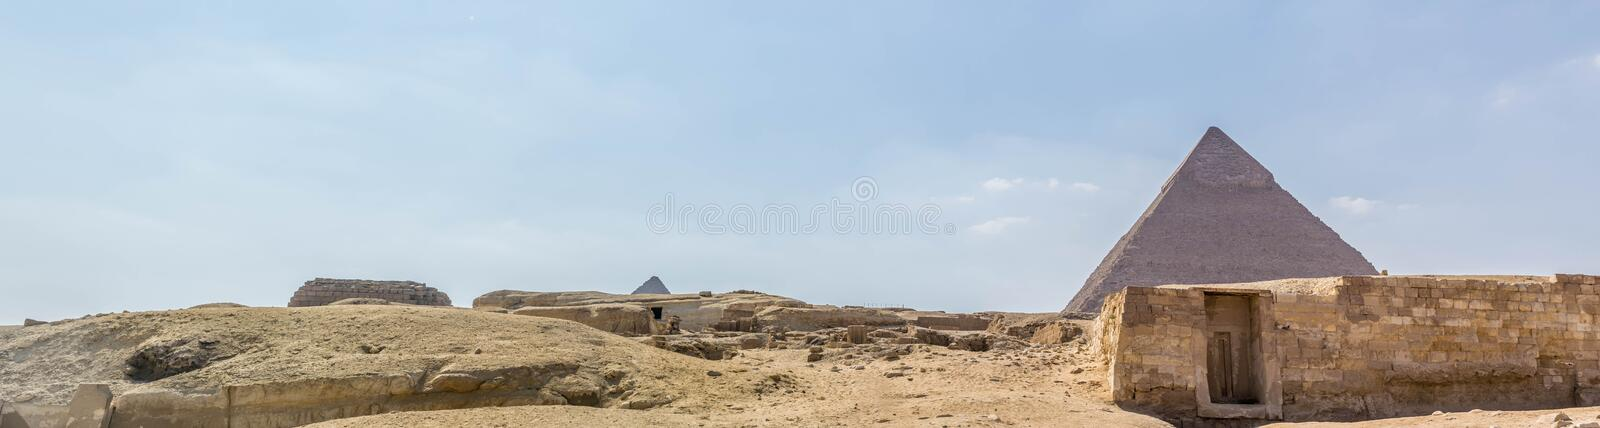 Pyramid of Khafre on the background of the ruins of the city stock image